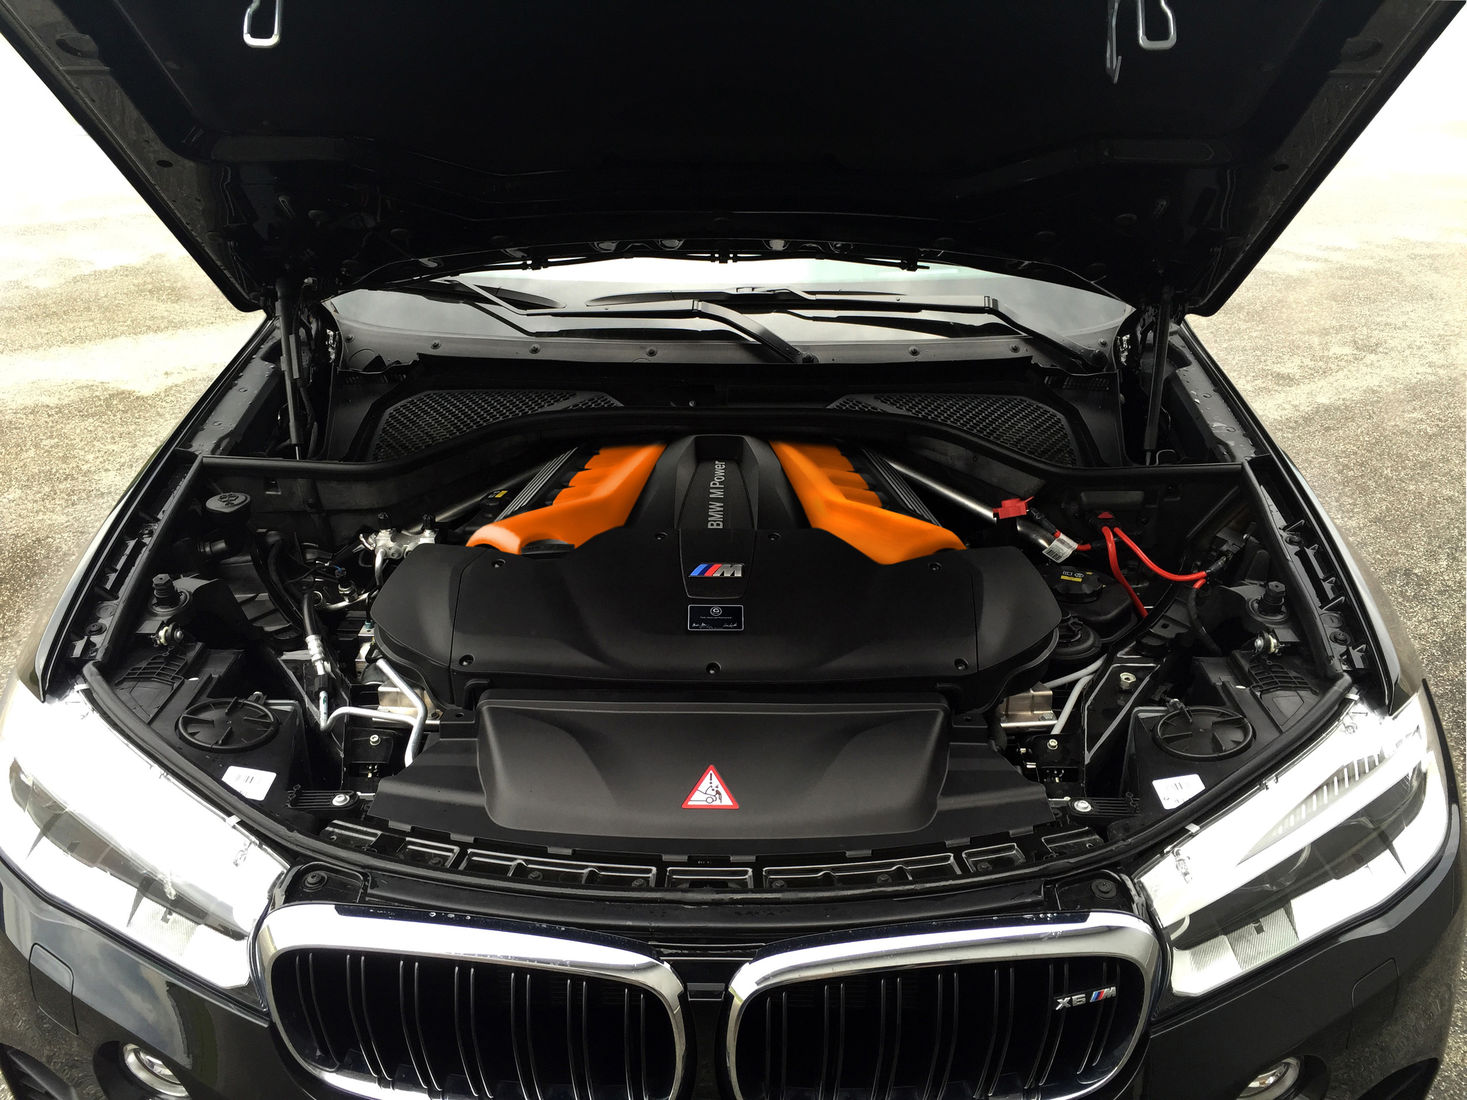 hight resolution of g power bmw x6m image 750x562